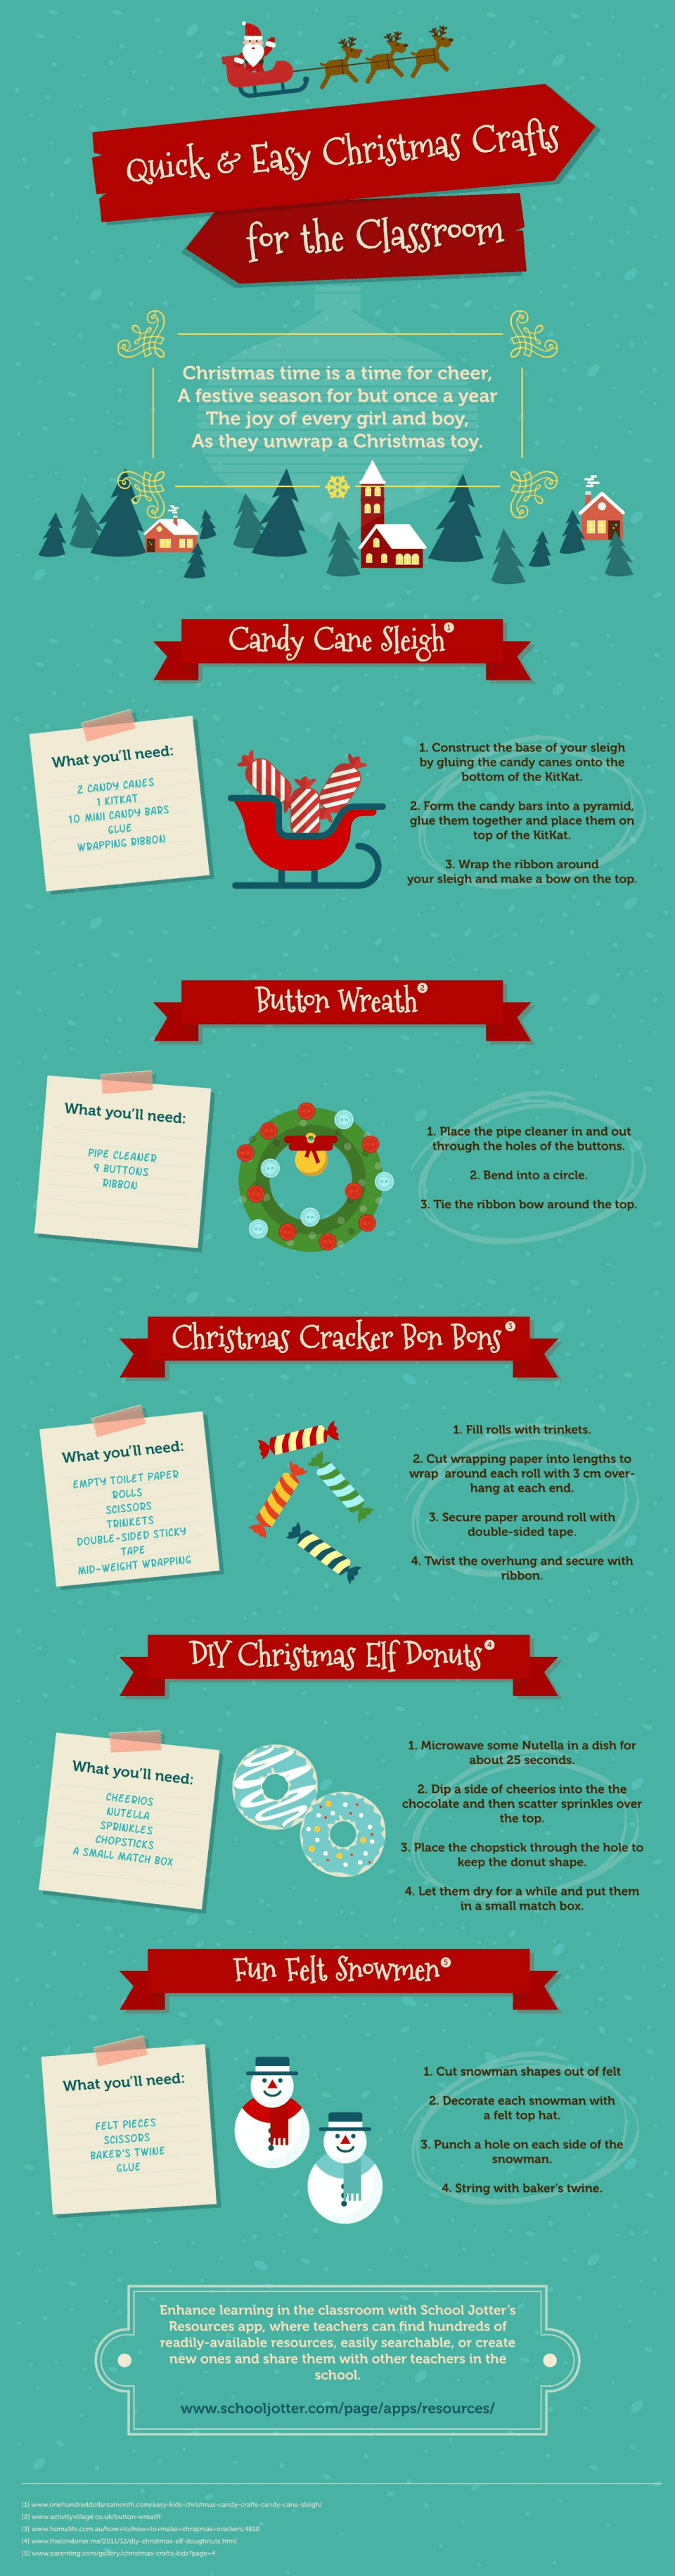 Quick & Easy Christmas Crafts for the Classroom Infographic